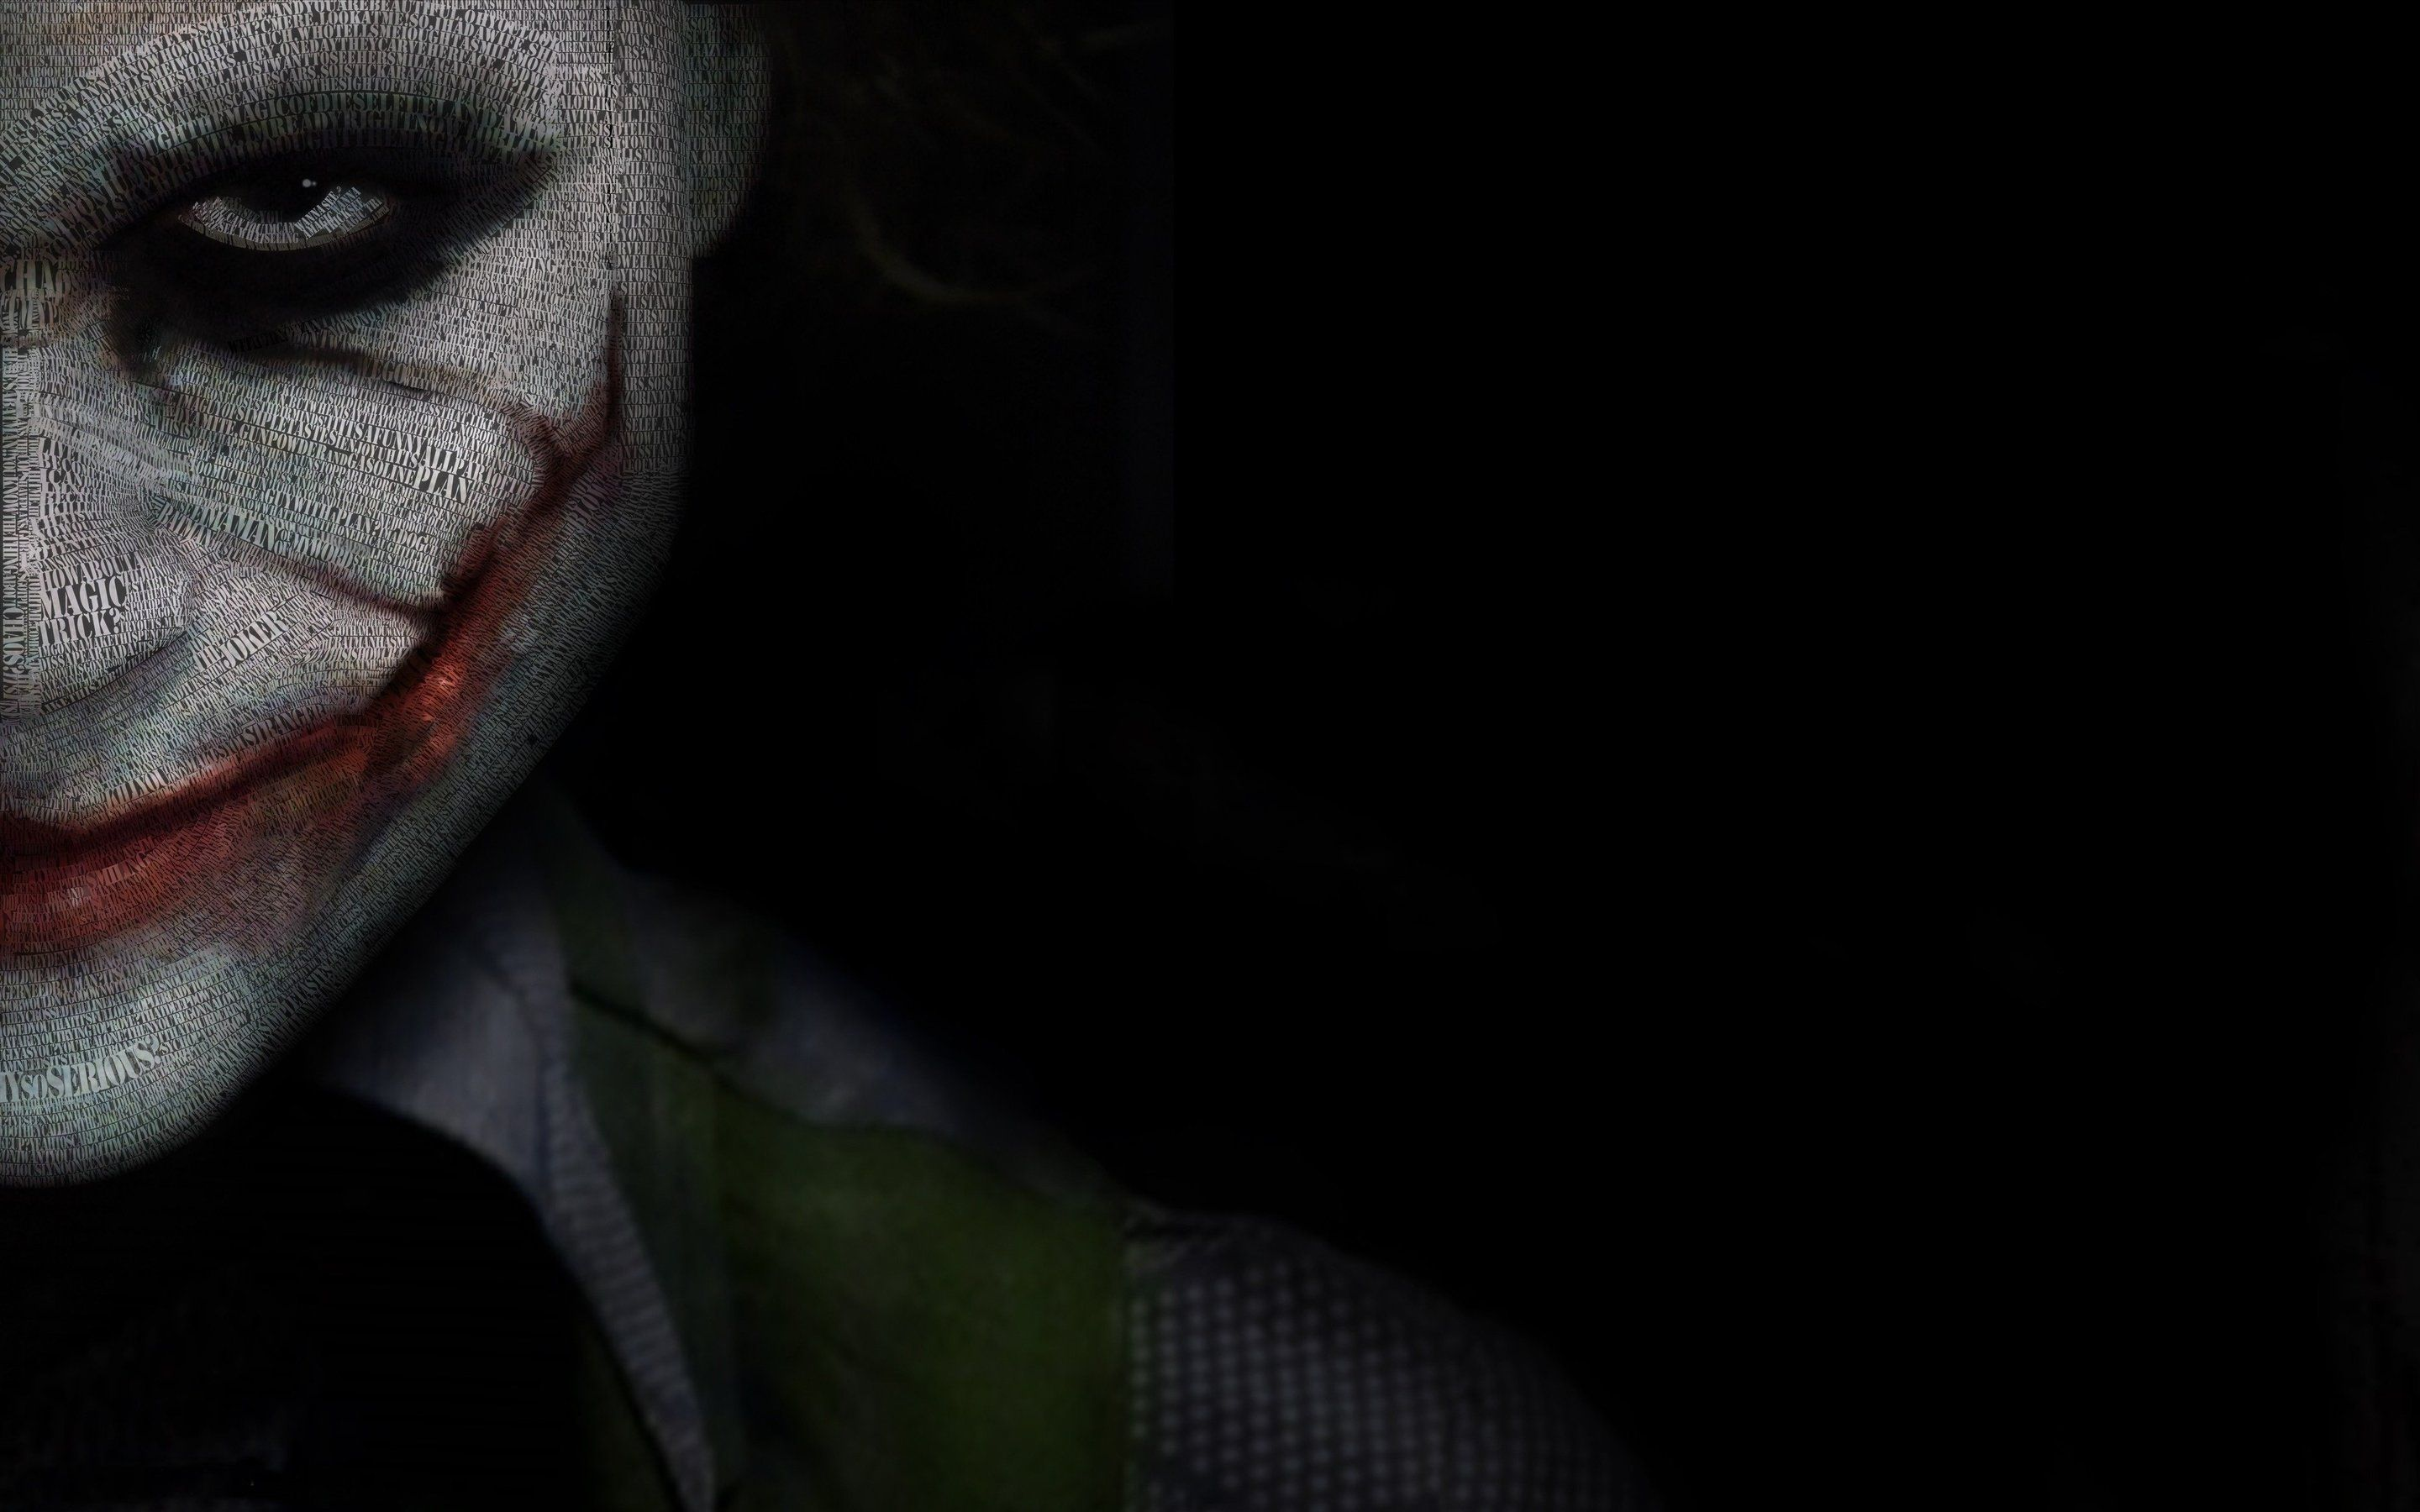 2880x1800 4k Joker Macbook Pro Retina Hd 4k Wallpapers Images Joker Wallpapers Heath Ledger Joker Wallpaper Joker Hd Wallpaper